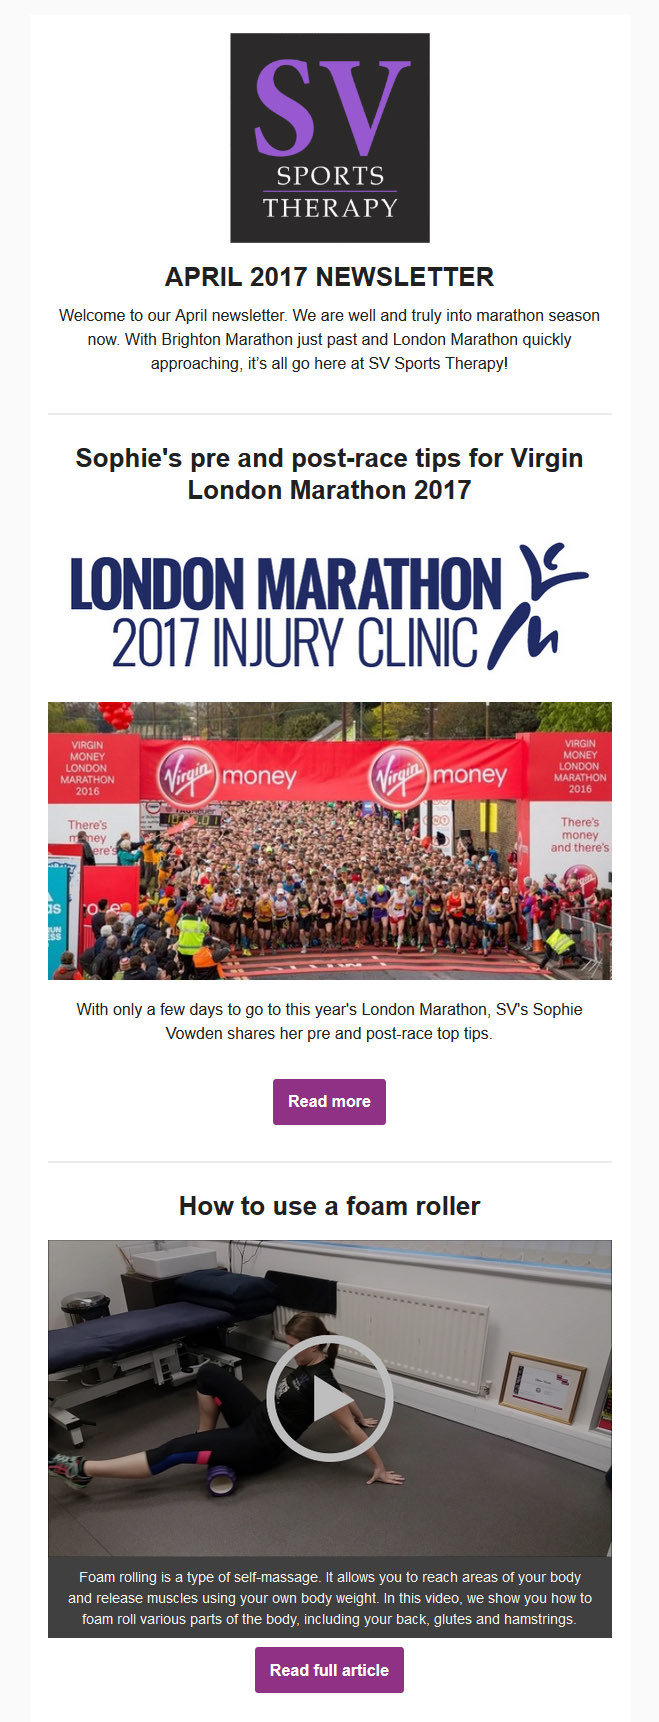 SV Sports Therapy March 2017 Newsletter